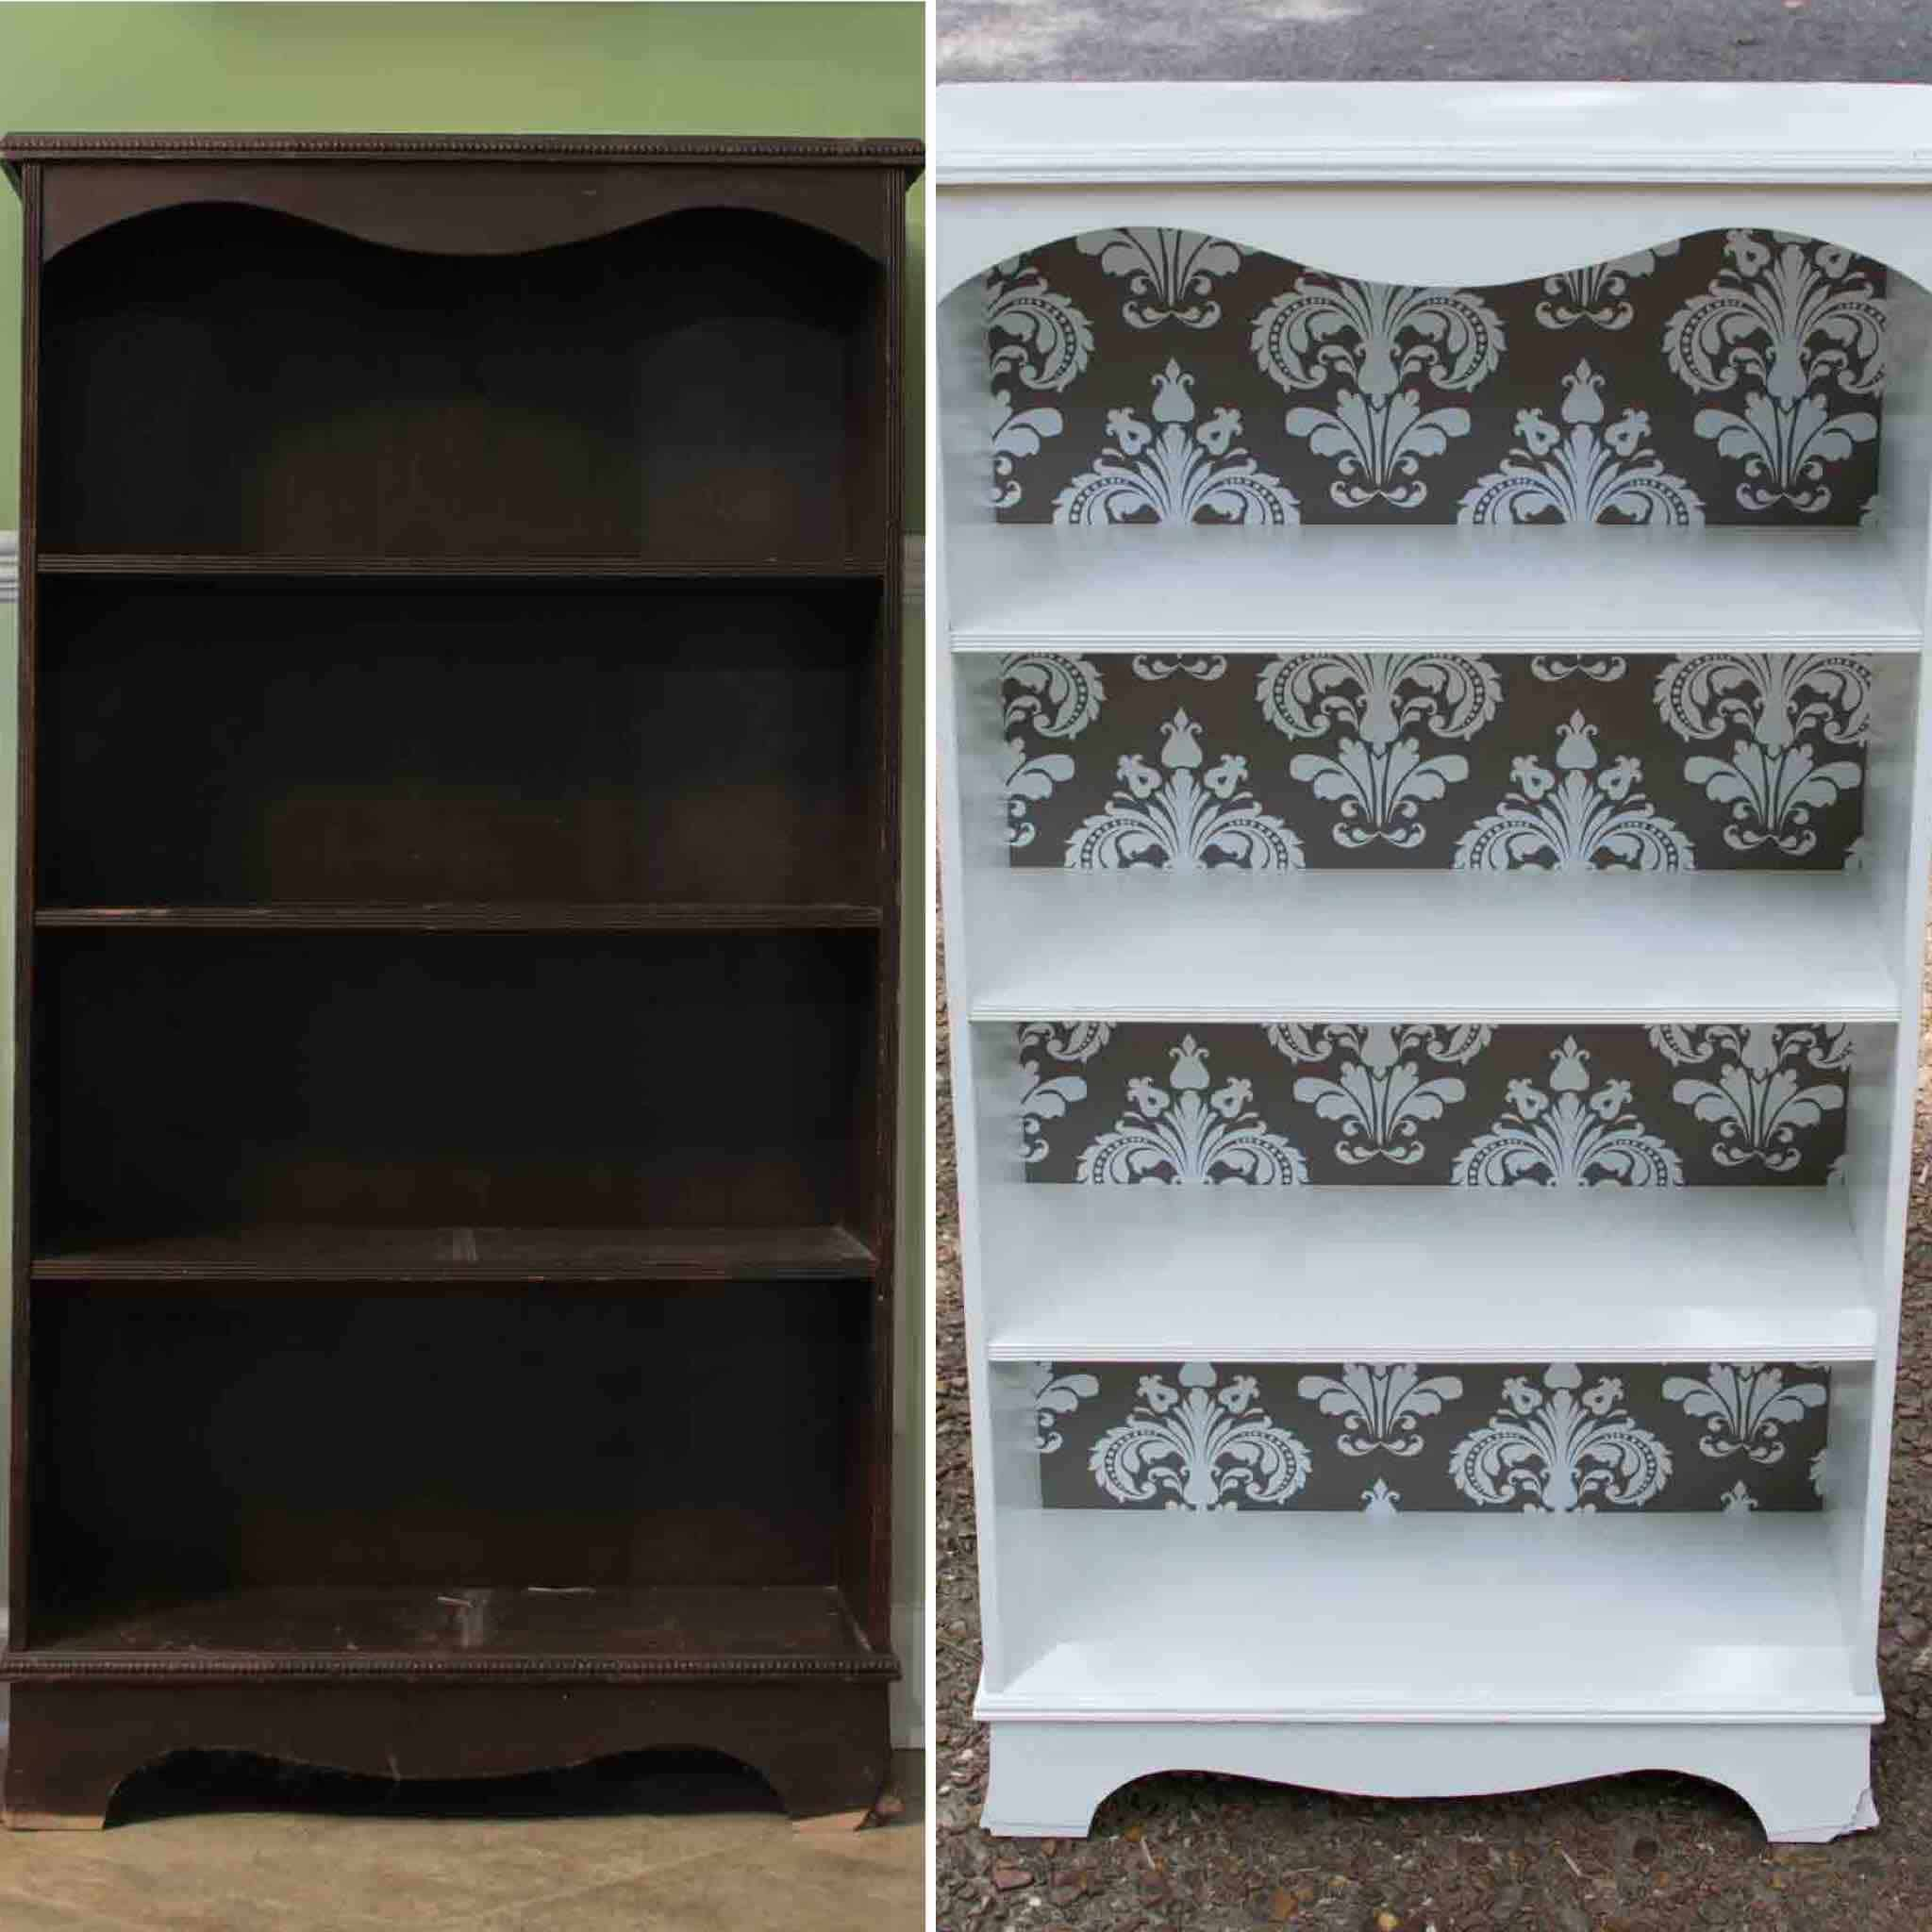 Learn how I completed this bookcase repurpose